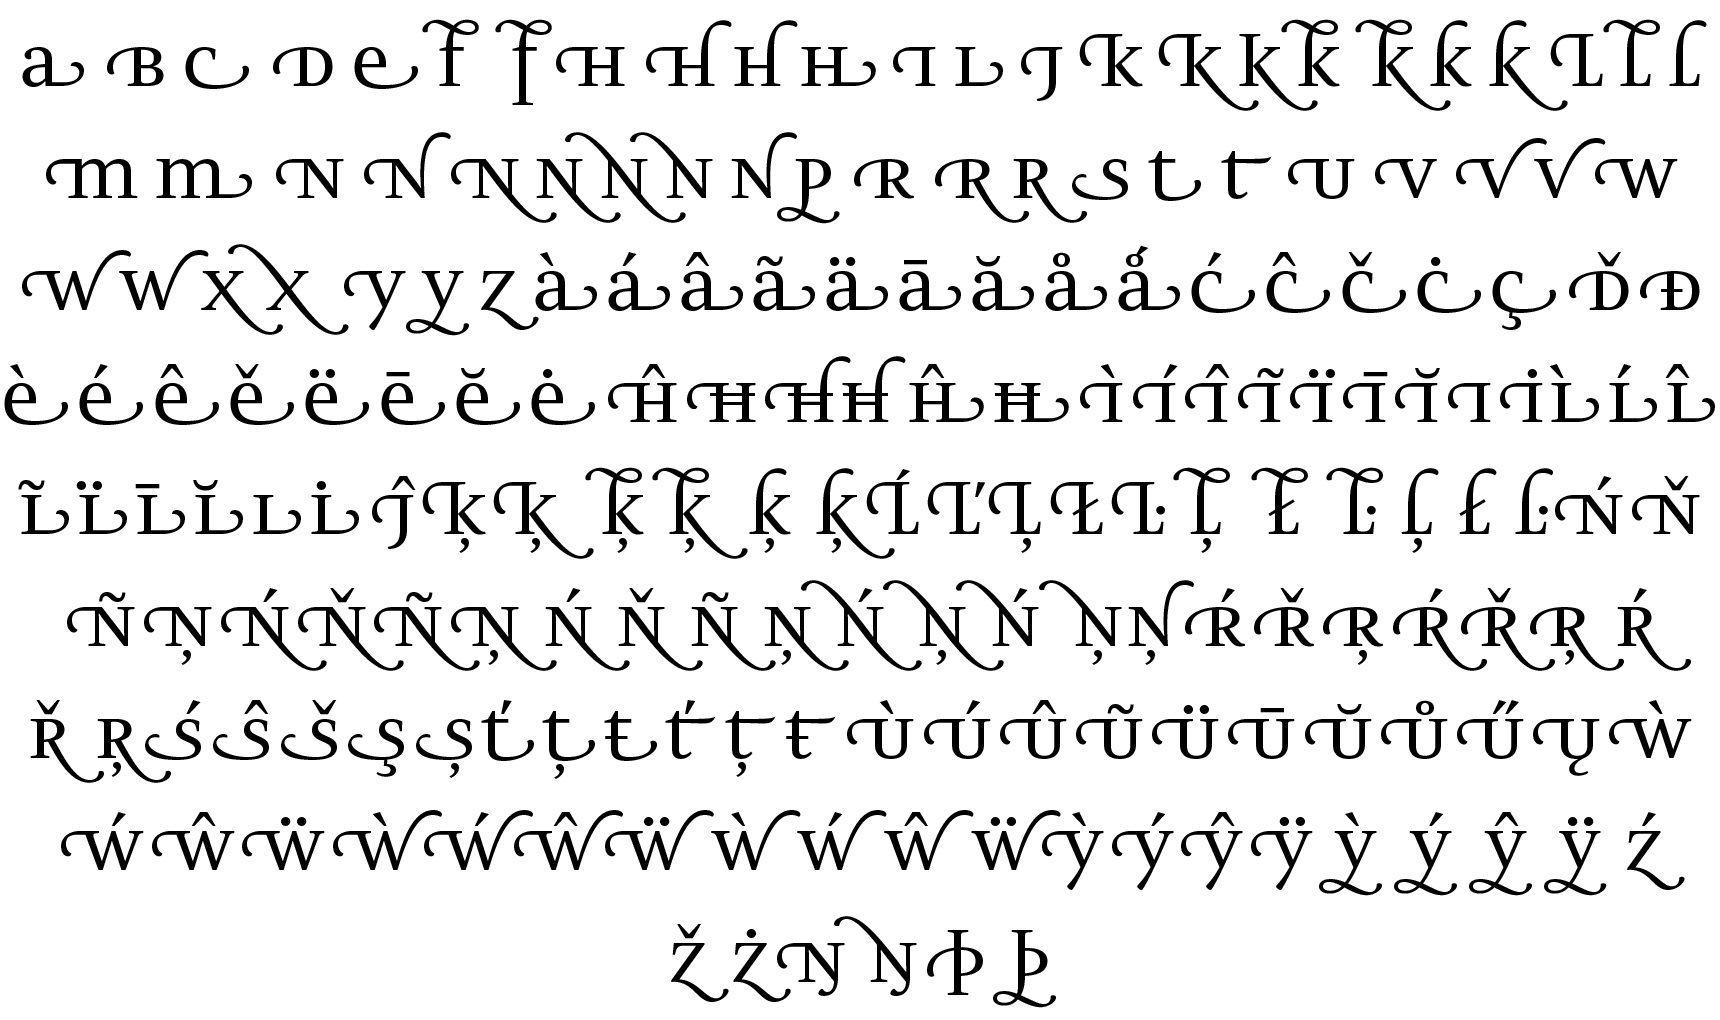 <p>Swash forms</p> glyphs